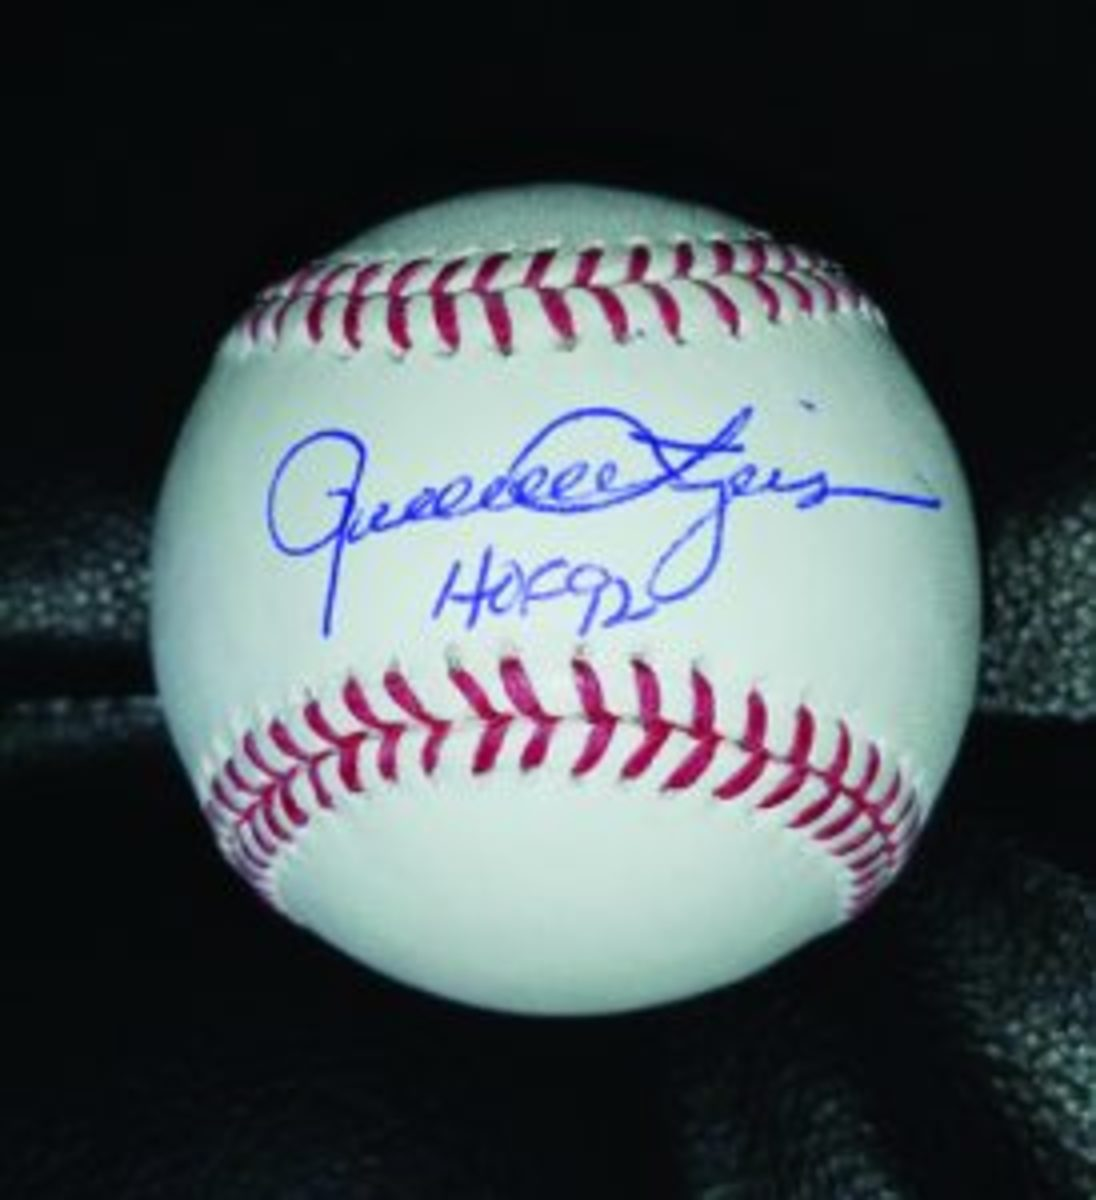 A baseball signed by Rollie Fingers.